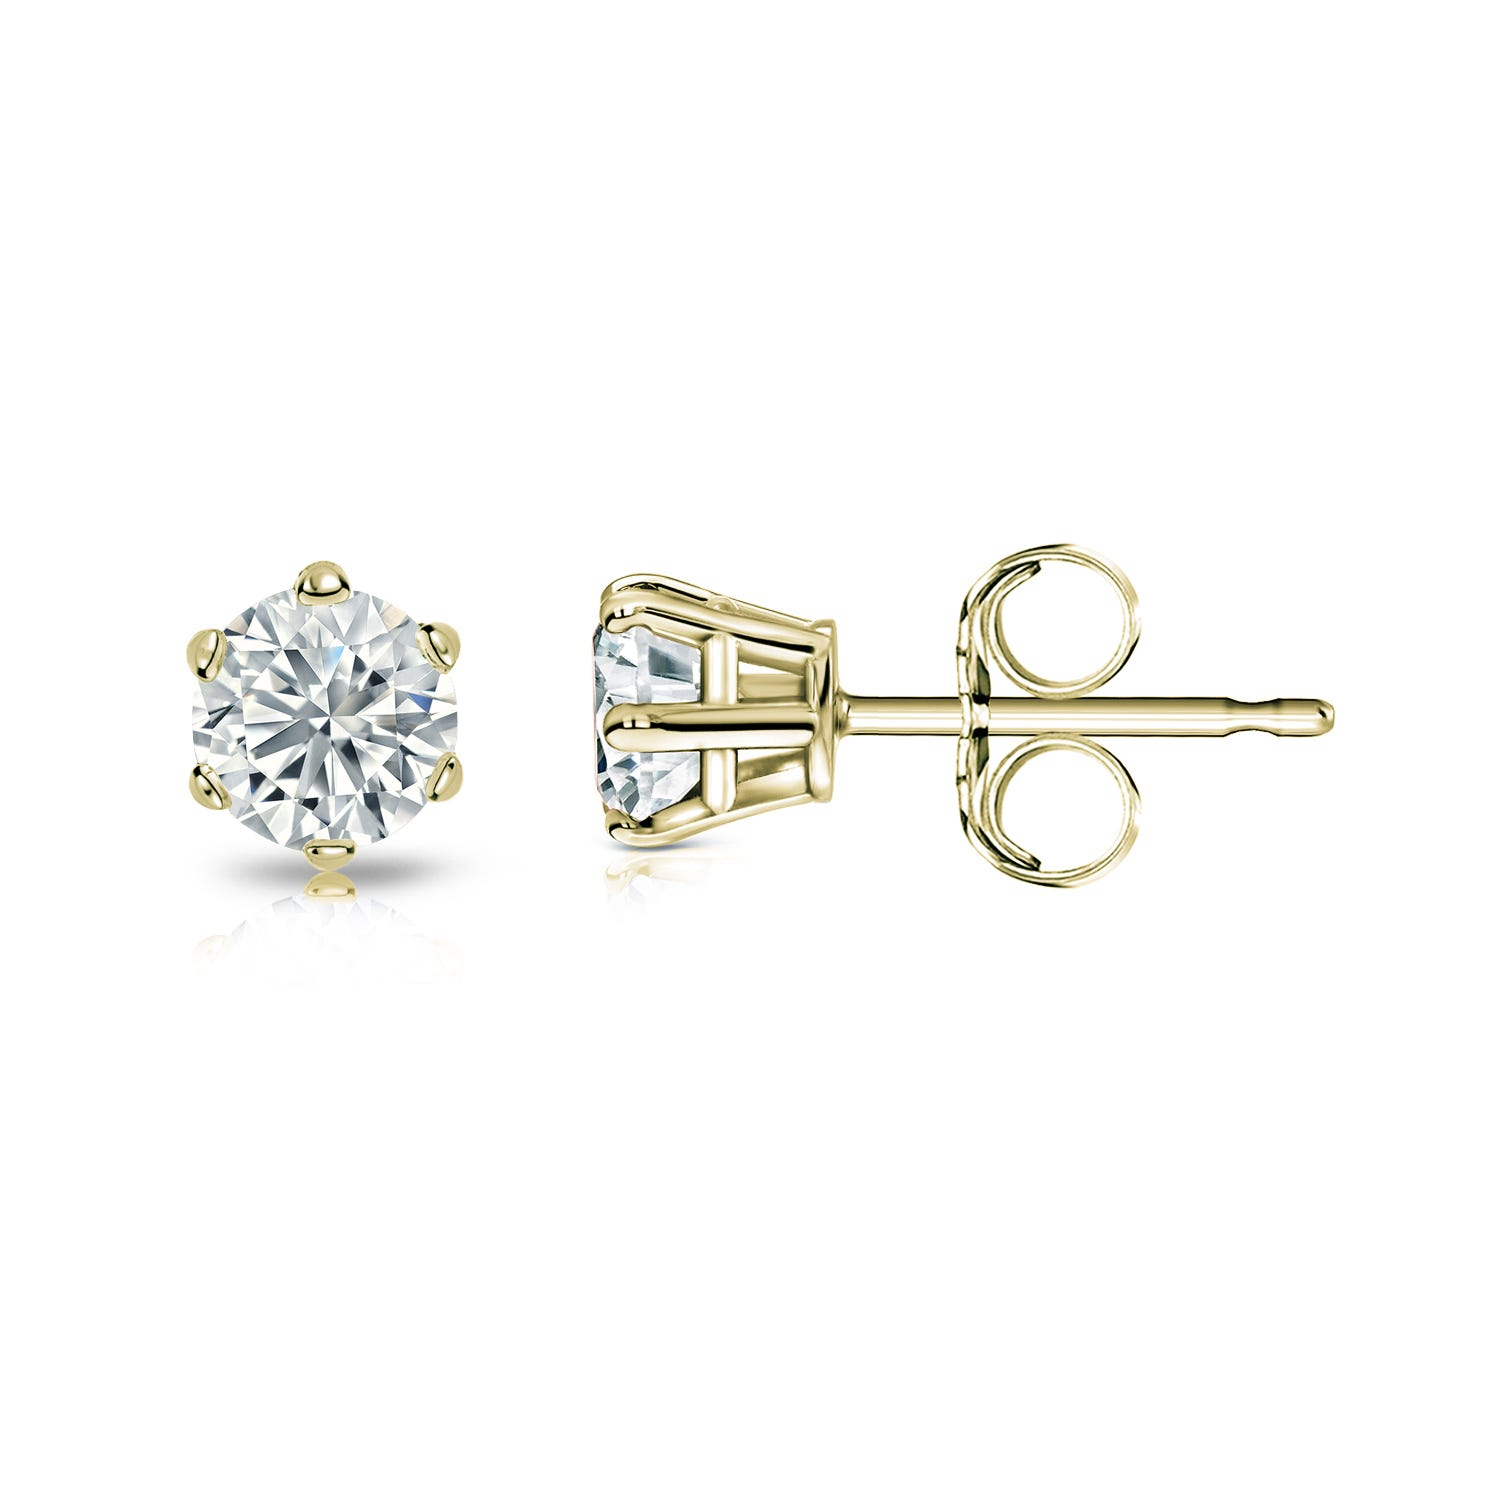 Round Diamond 1/7ctw. (IJ-SI1) Solitaire Stud 6-Prong Earrings in 14K Yellow Gold